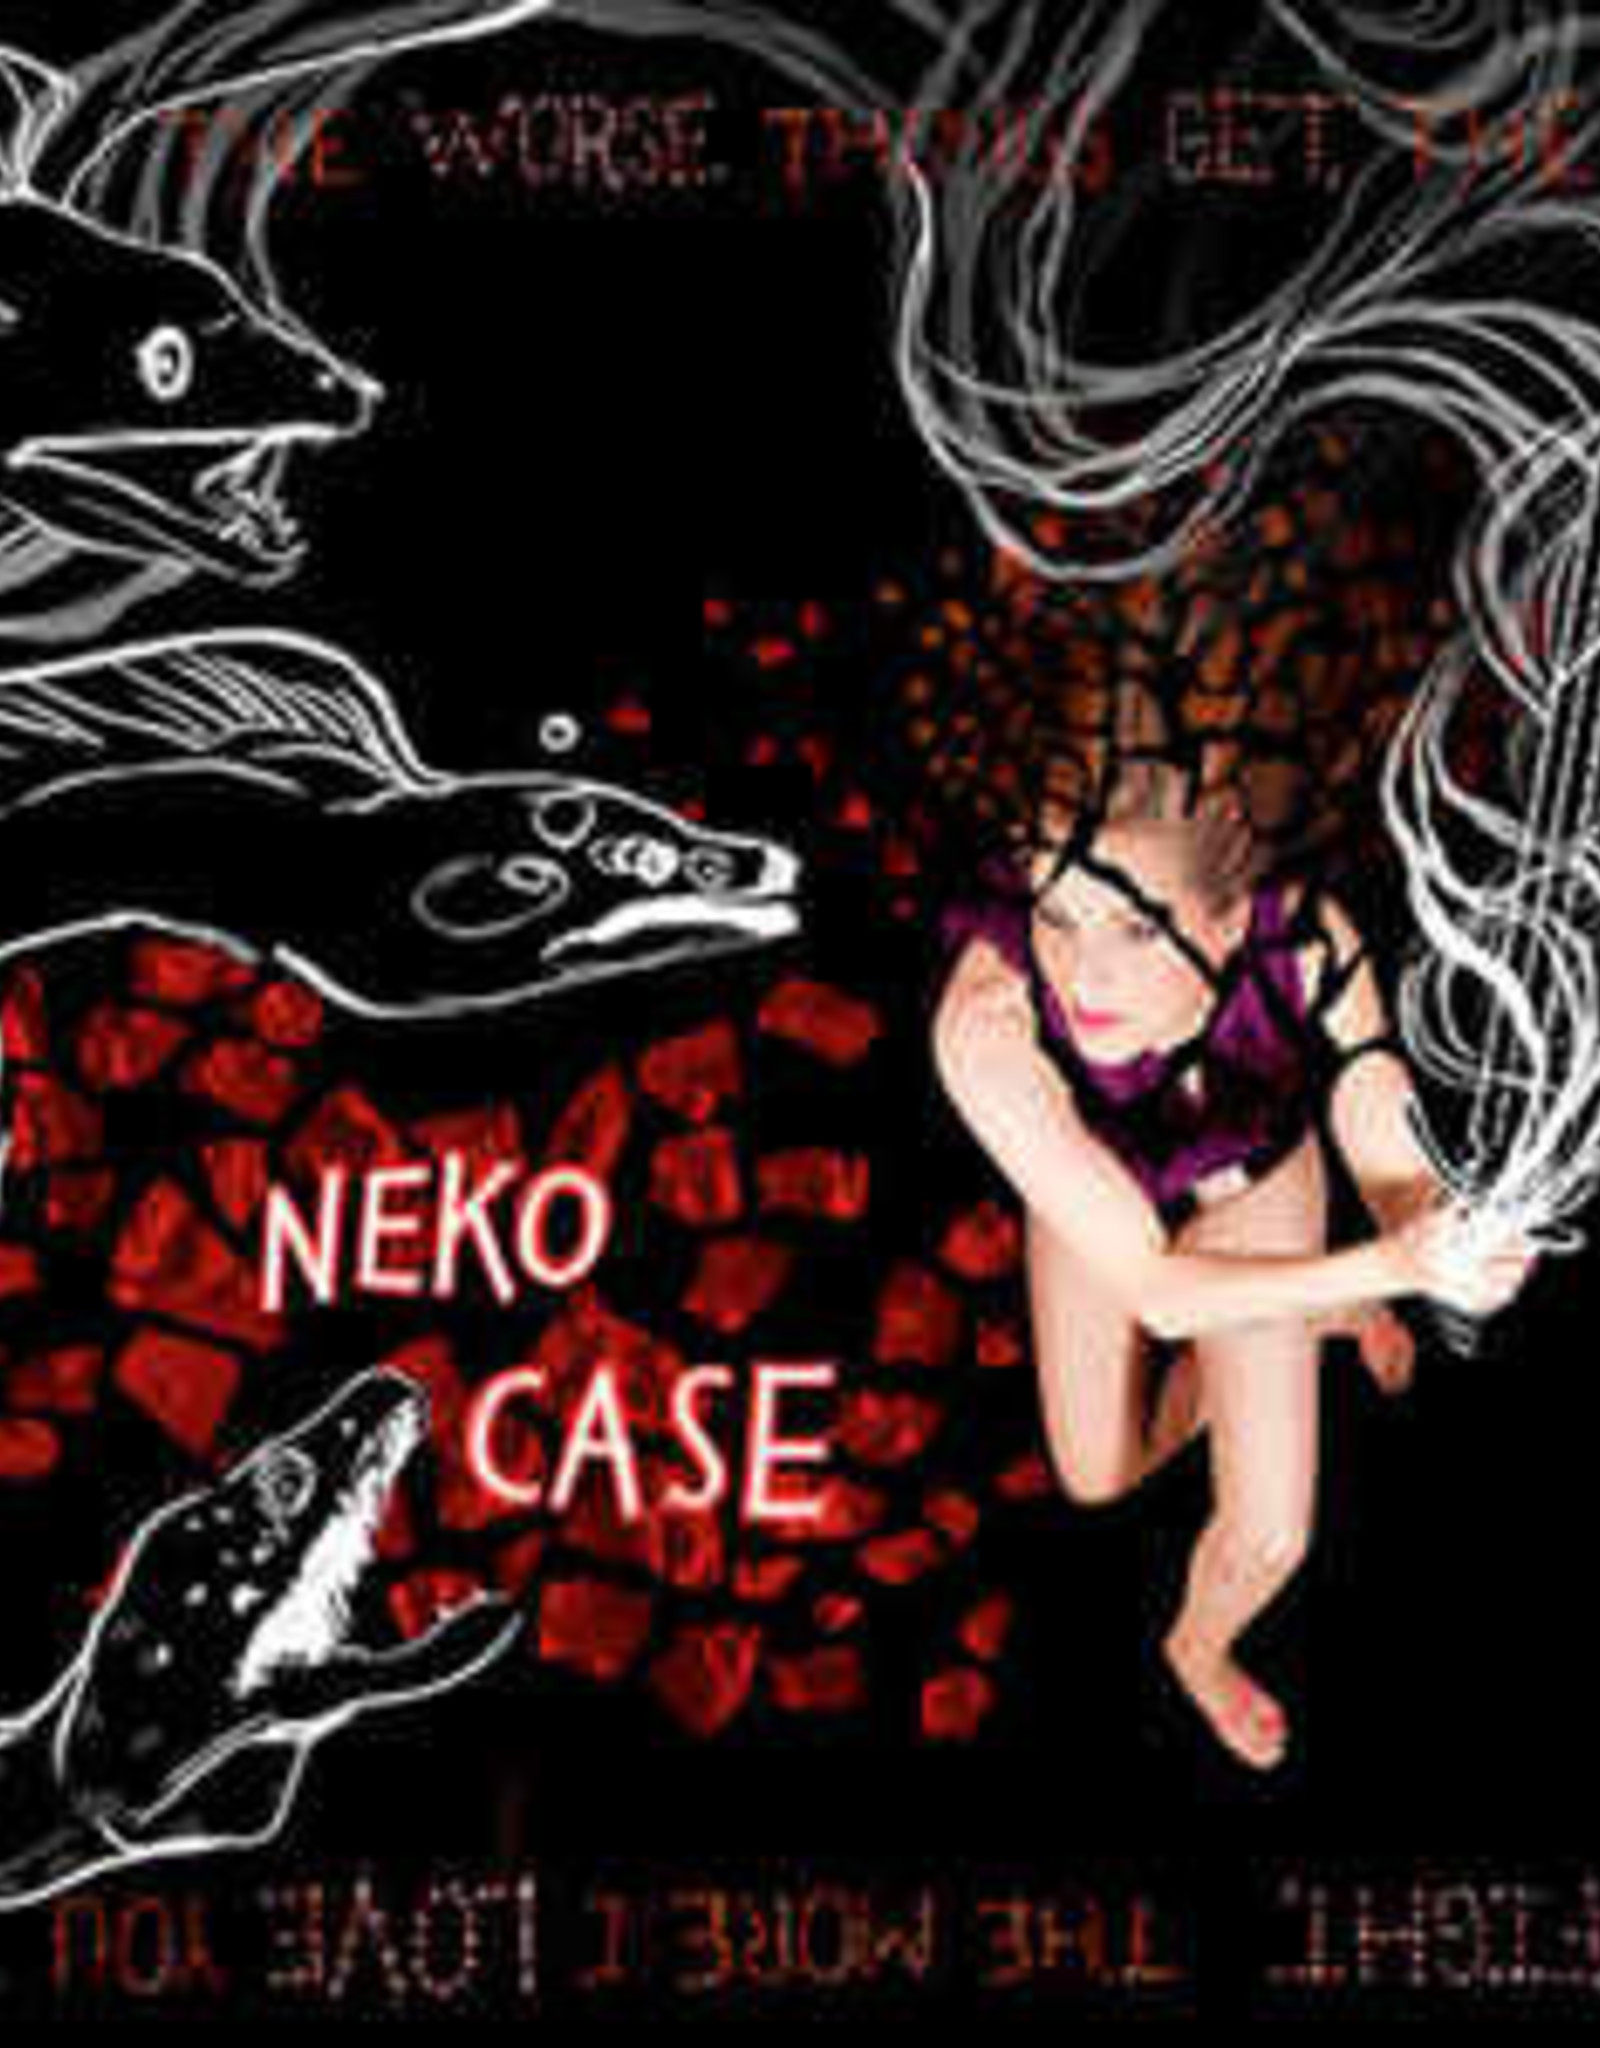 Neko Case - The Worse Things Get, The Harder I Fight